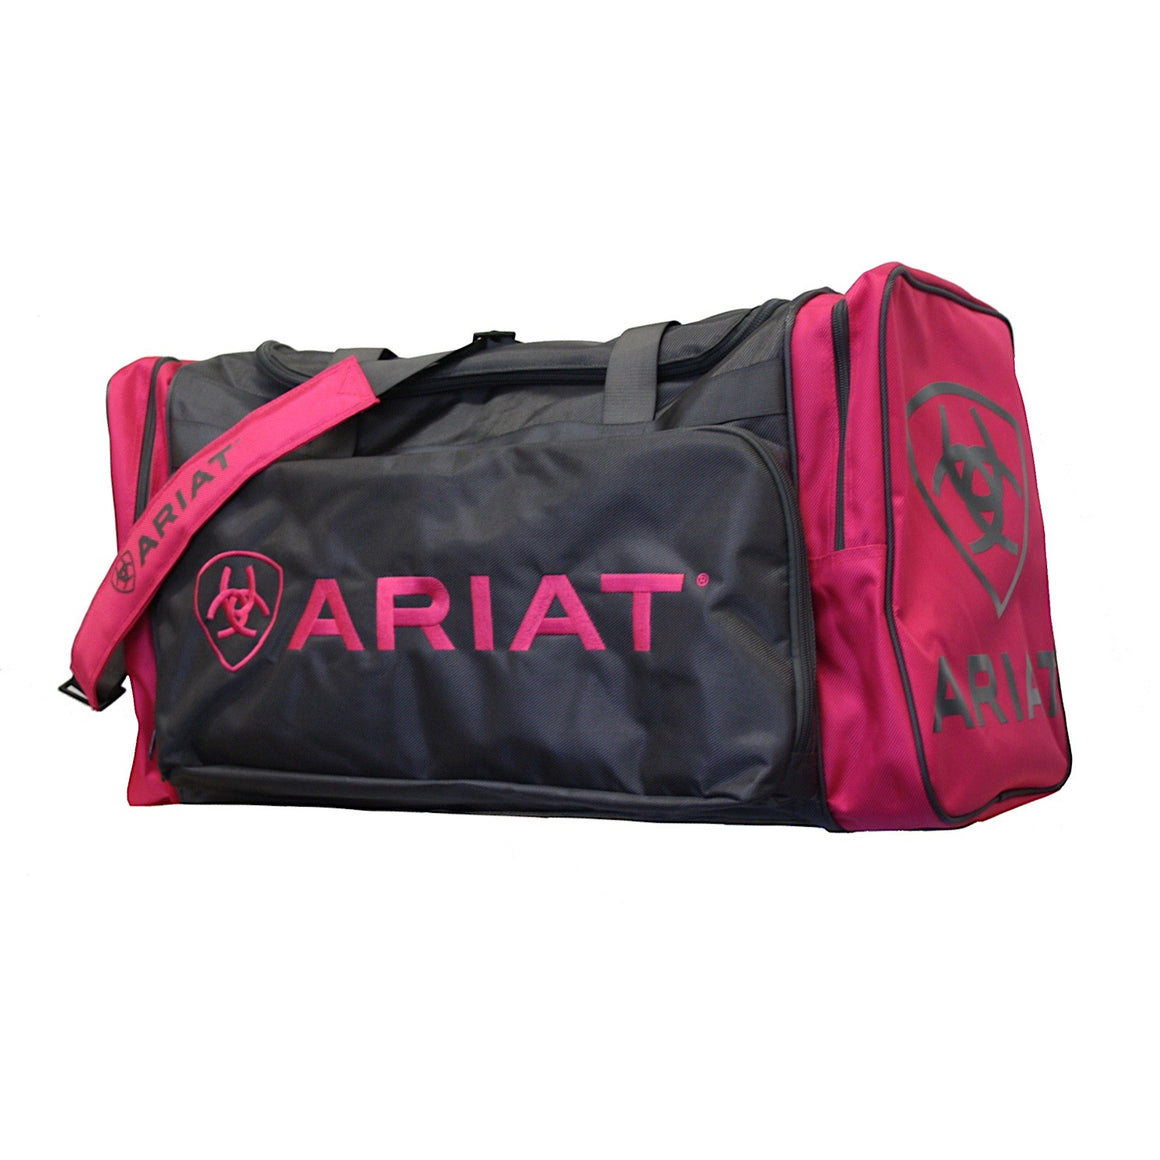 Ariat Gear Bag Pink/Charcoal NEW COLOUR